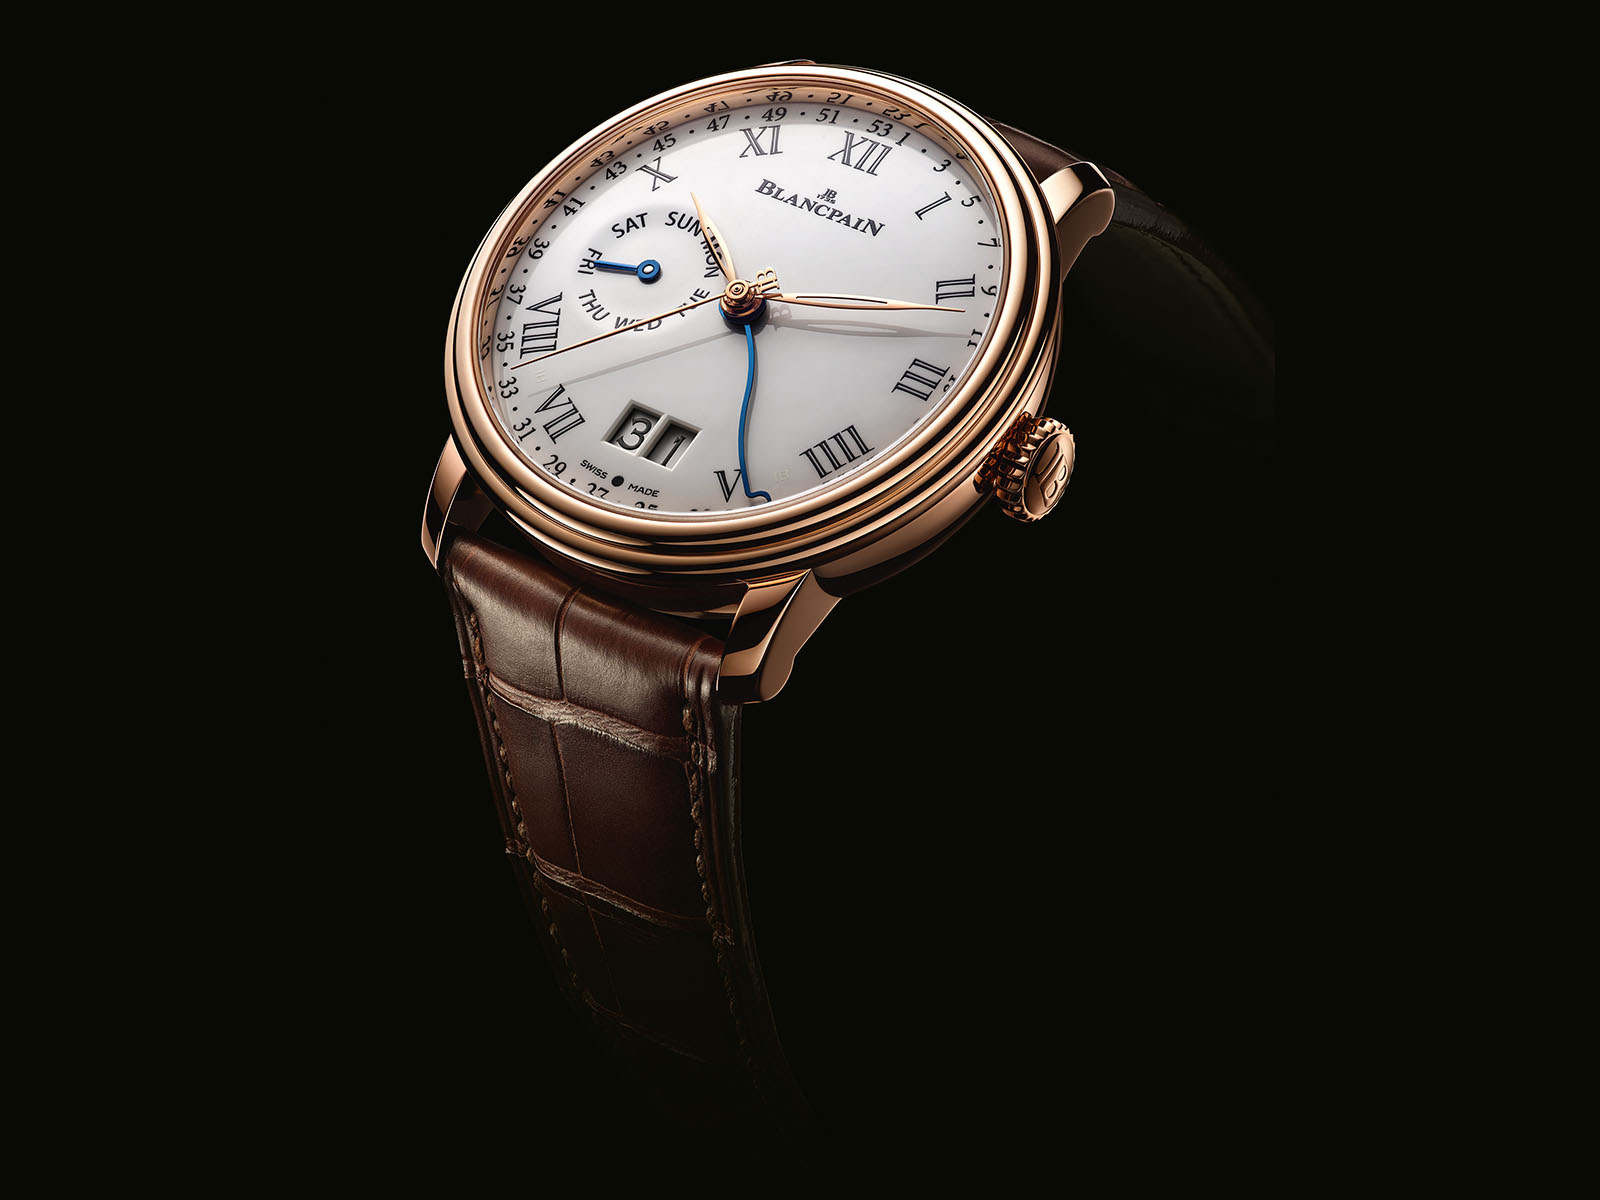 Blancpain-Villeret-Collection-6637-3631-55B-4.jpg